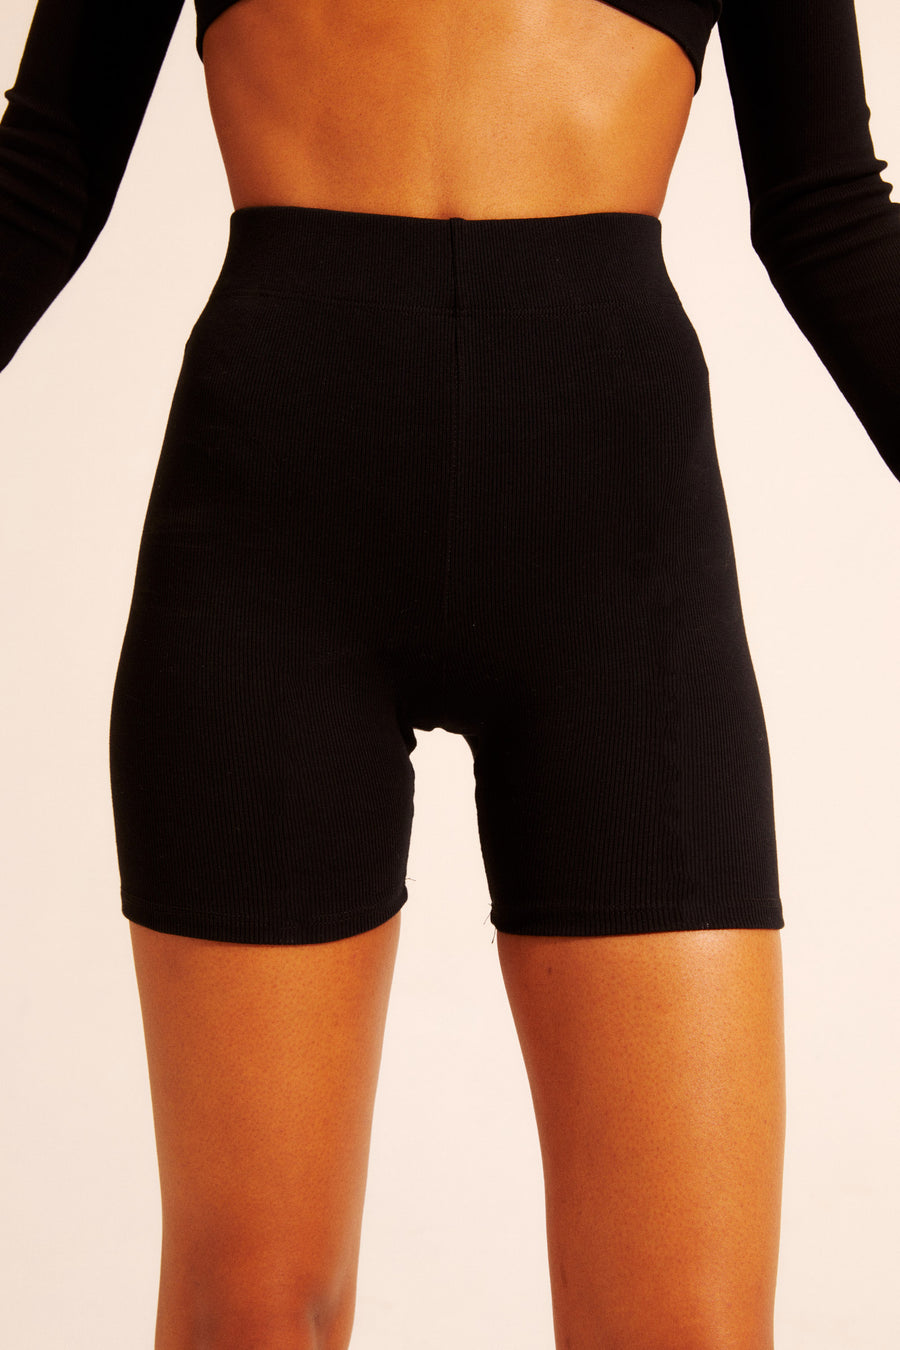 The perfect bike short, made for dressing up or down. Extra thick band at waist with elastic. Available in XS - XXL.